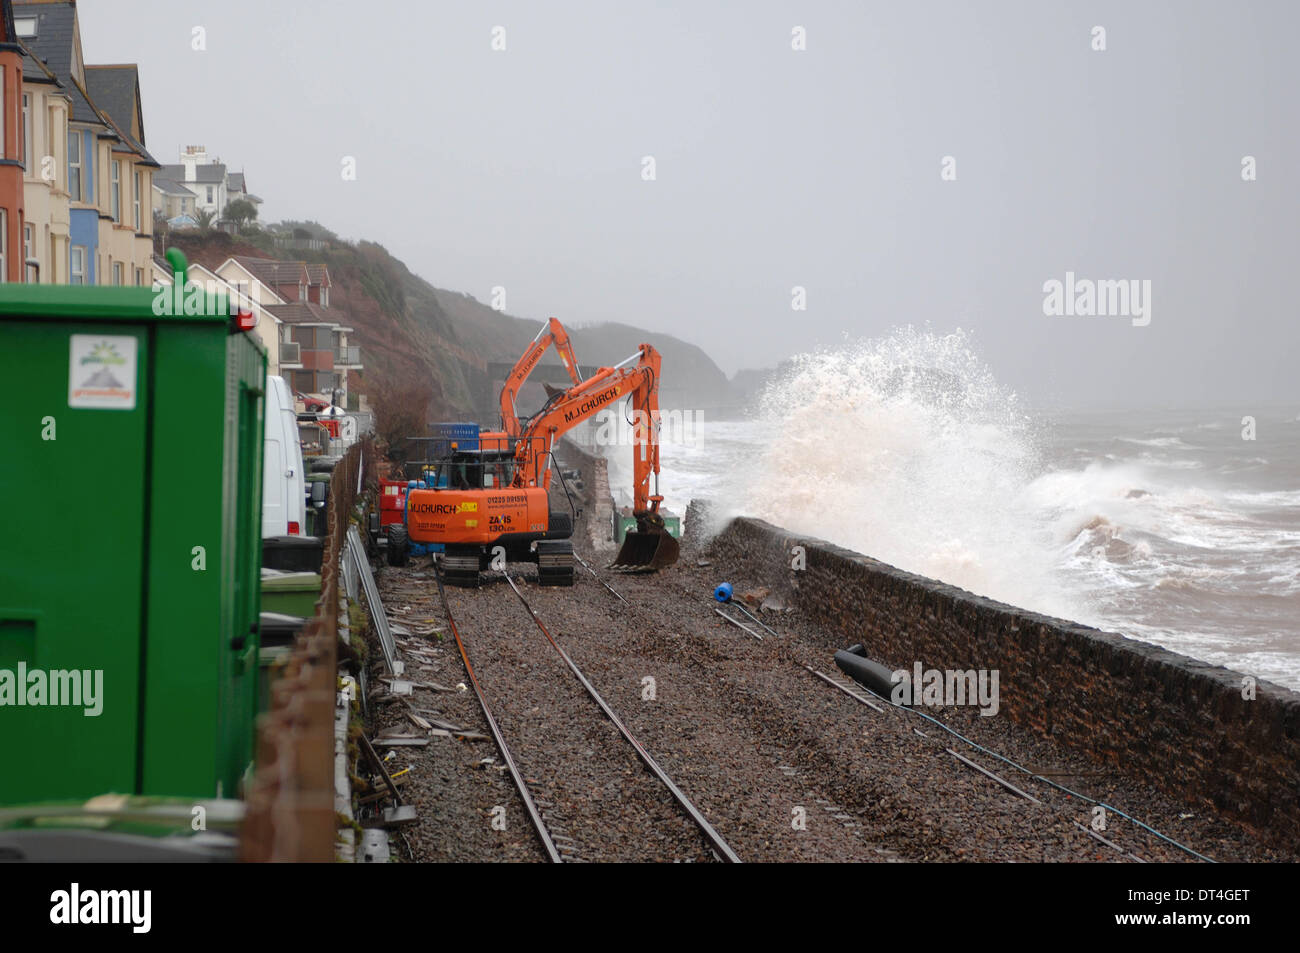 Dawlish, UK. 8th Feb, 2014. Work begins to restore the severed rail line at Dawlish in Devon England cutting all rail links to Cornwall after storms wash away the sea wall. Credit Paul Glendell 5 Feb 2014 - Stock Image